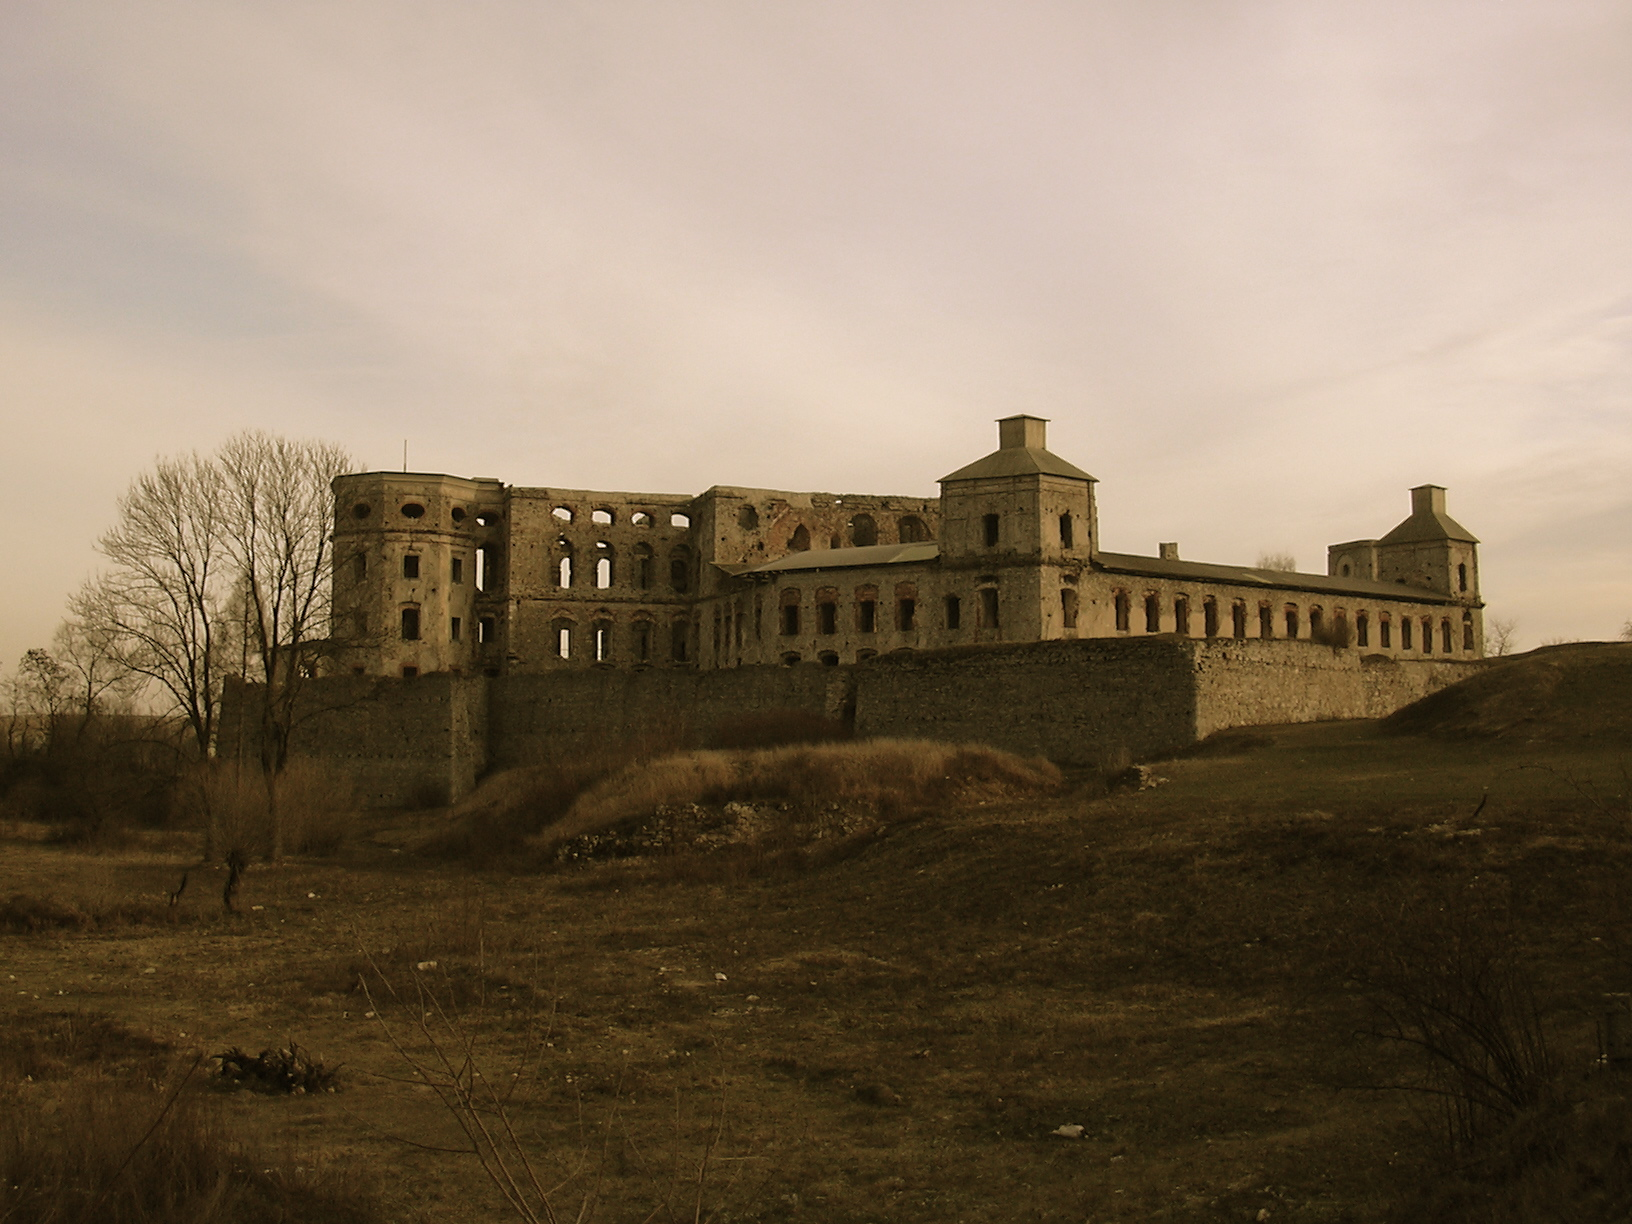 Beauty of abandoned places | Sandstone and amber Pictures Abandoned Places In Spanje